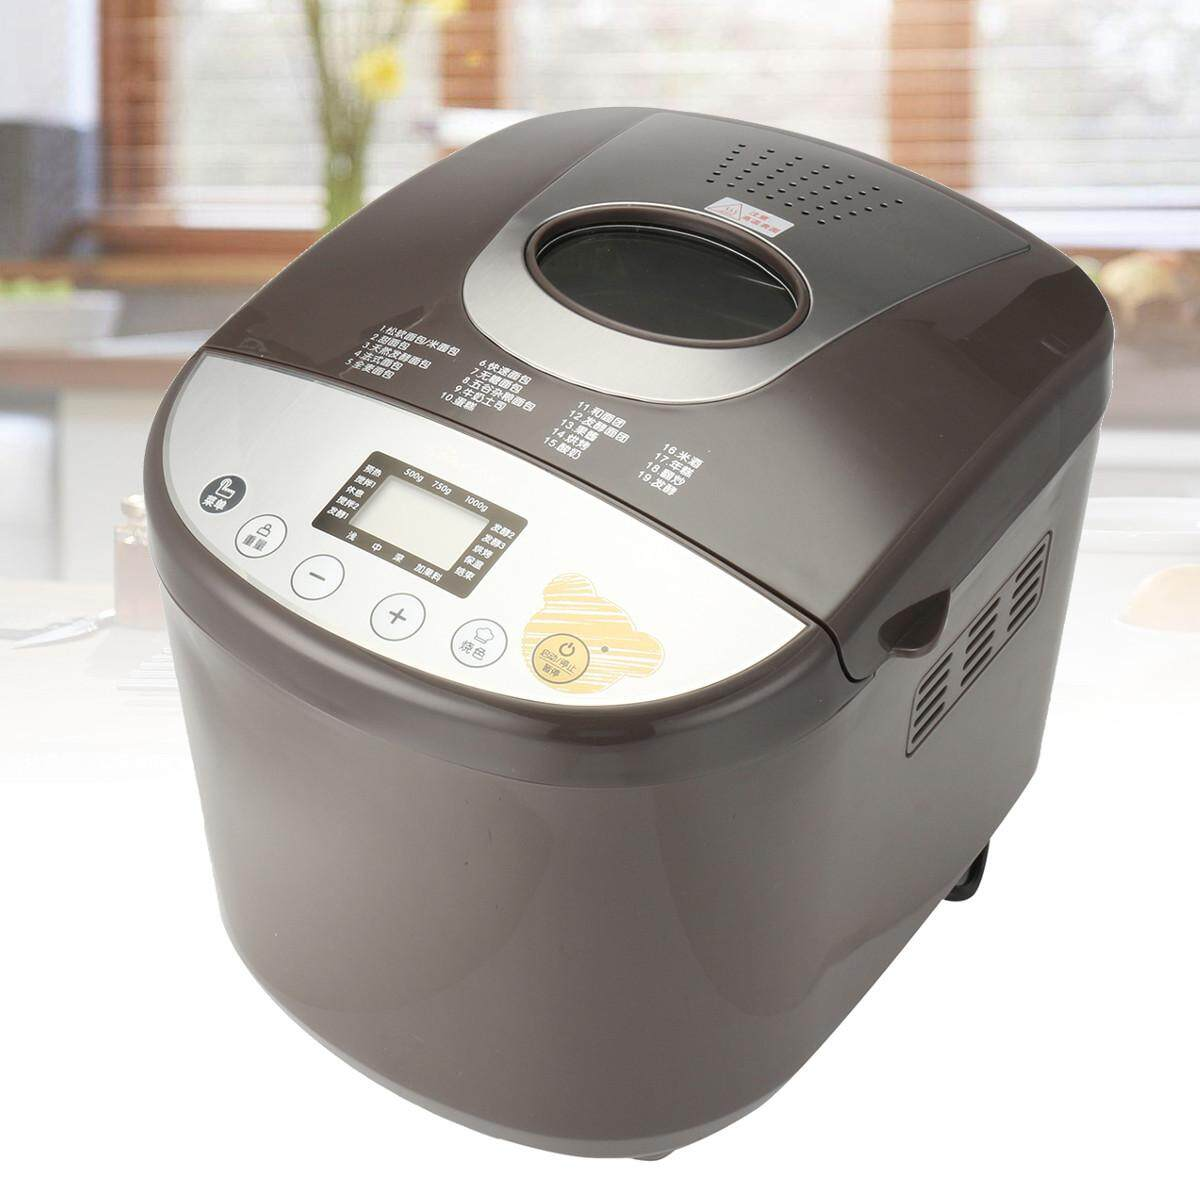 Stainless Steel 650w Electric Bread Maker Machine Programmable Home Kitchen By Glimmer.